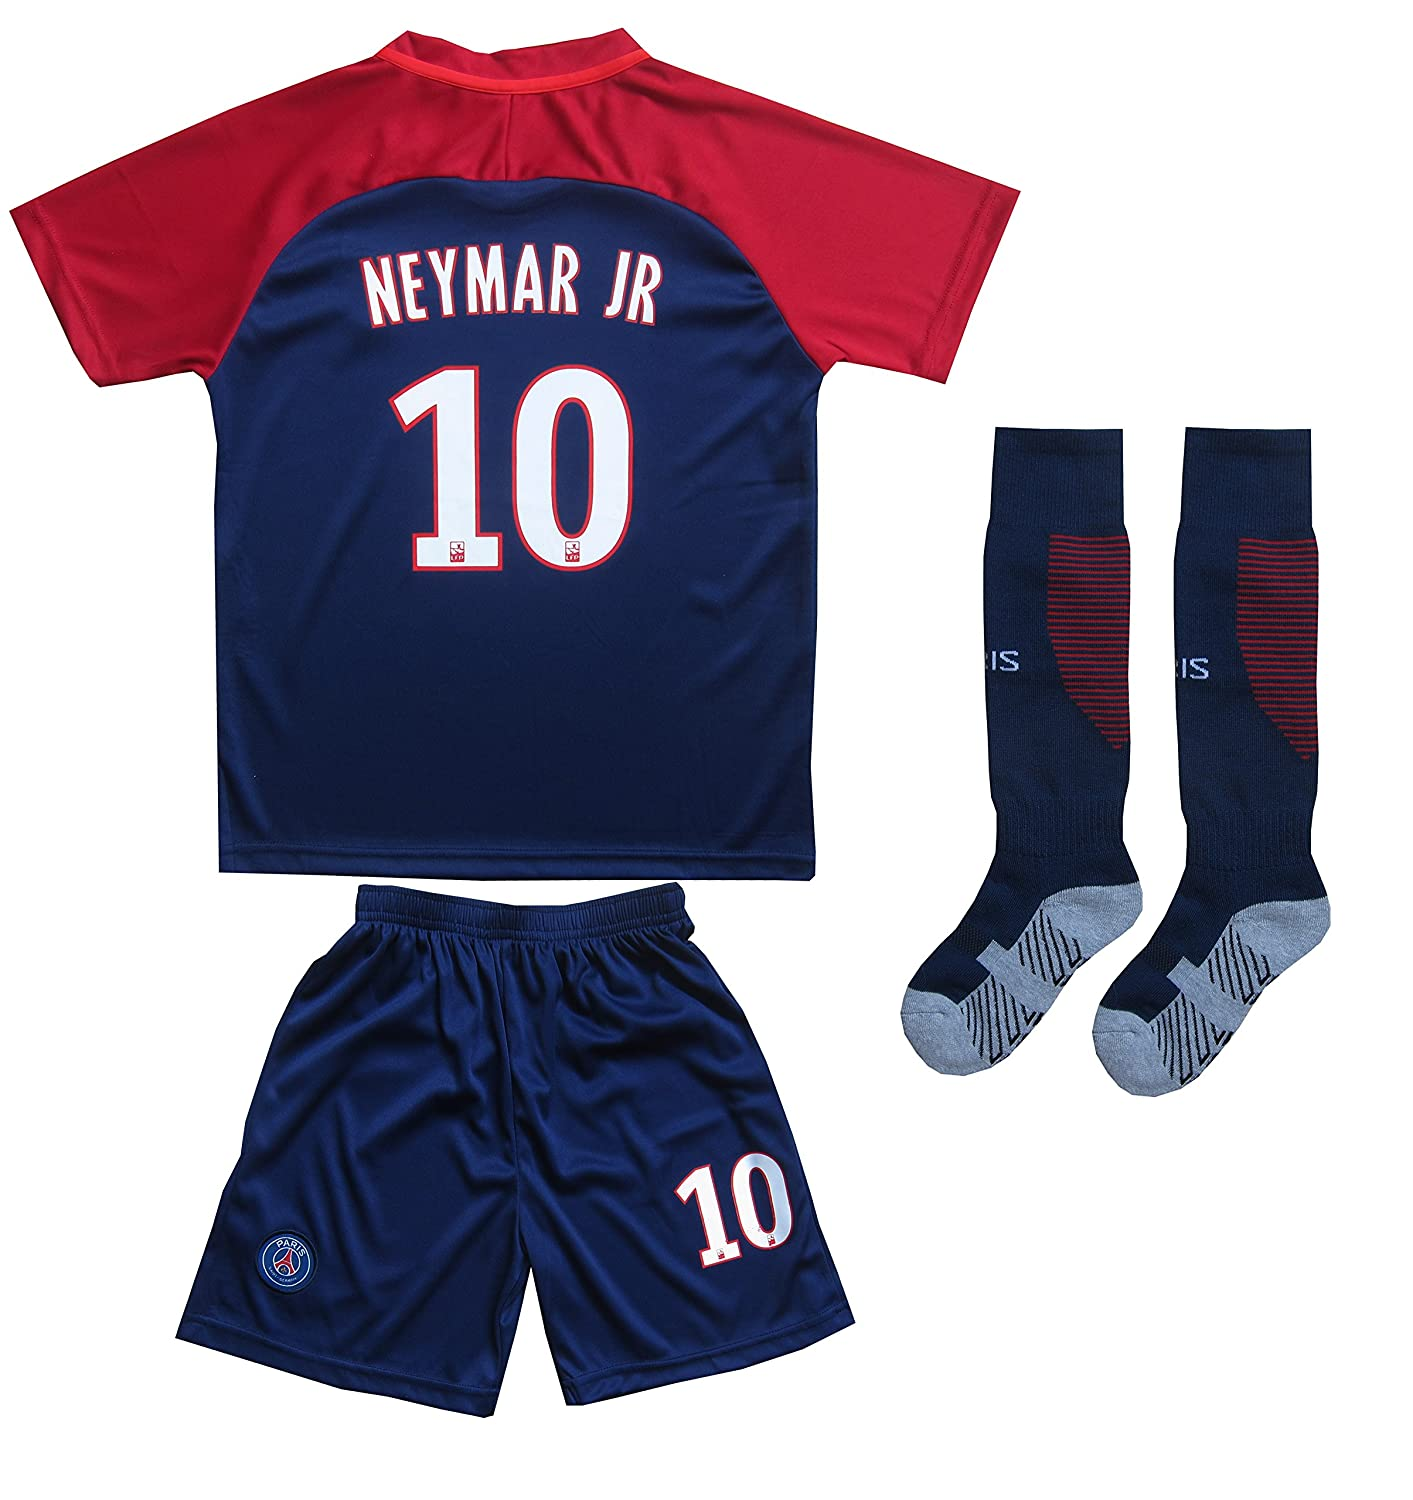 Psg black and pink jersey - Amazon Com 2017 2018 Paris Saint Germain Psg 10 Neymar Jr Home Soccer Jersey Shorts Youth Sizes Sports Outdoors